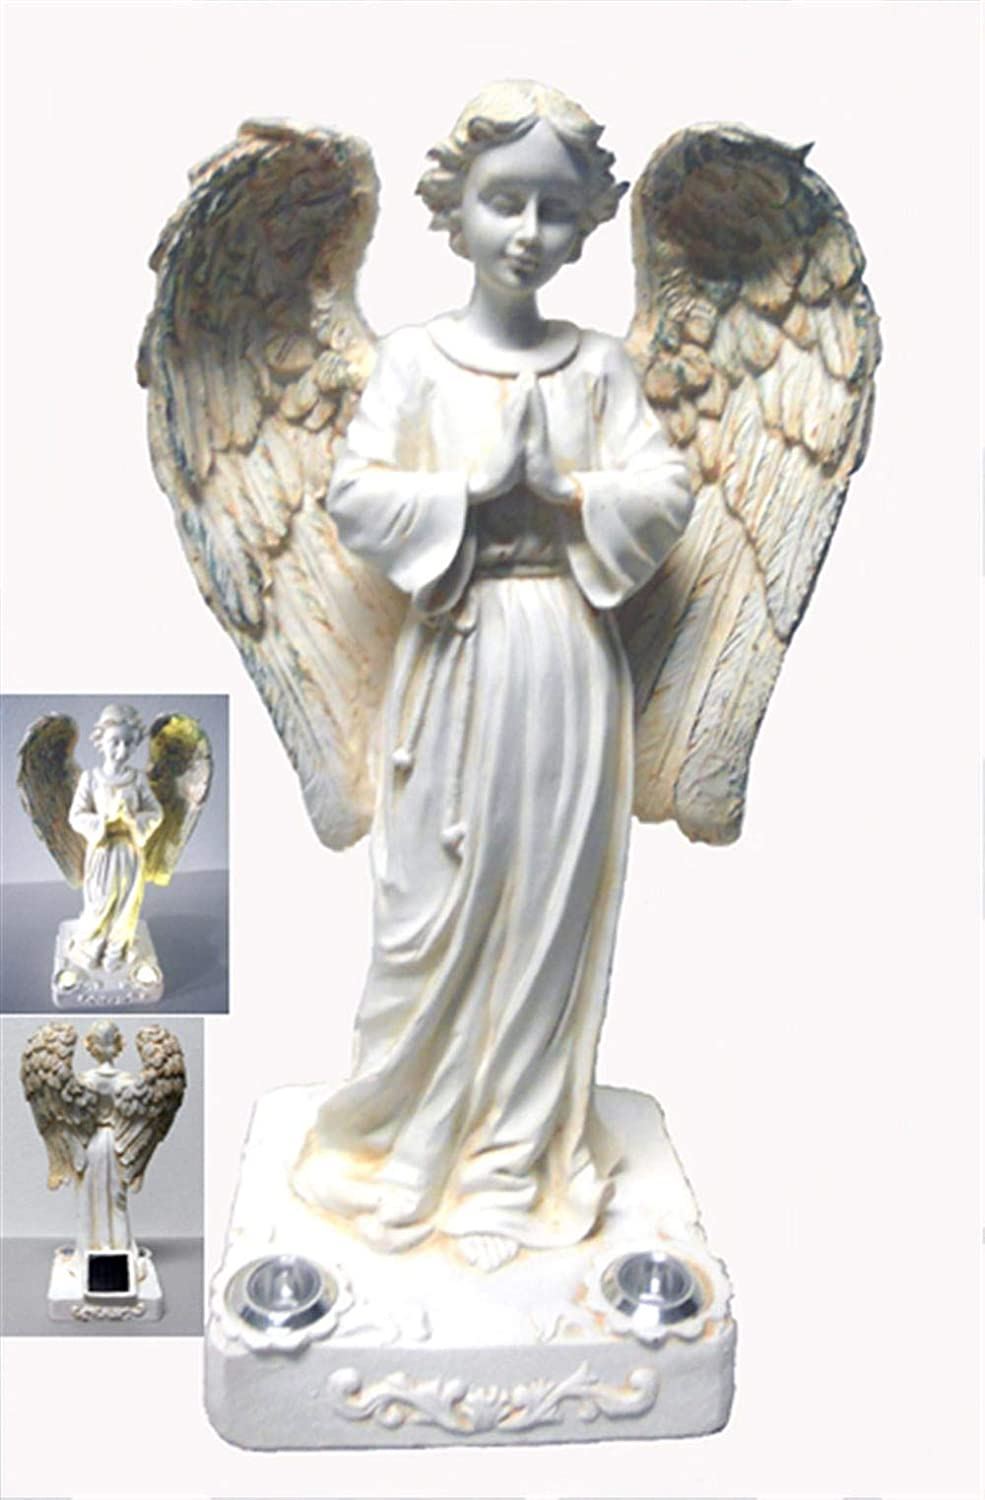 A-FFORDABLE Outdoor Praying Angel Solar Powered LED Outdoor Decor Garden Light Perfect for Christmas Gift, Holiday Gift